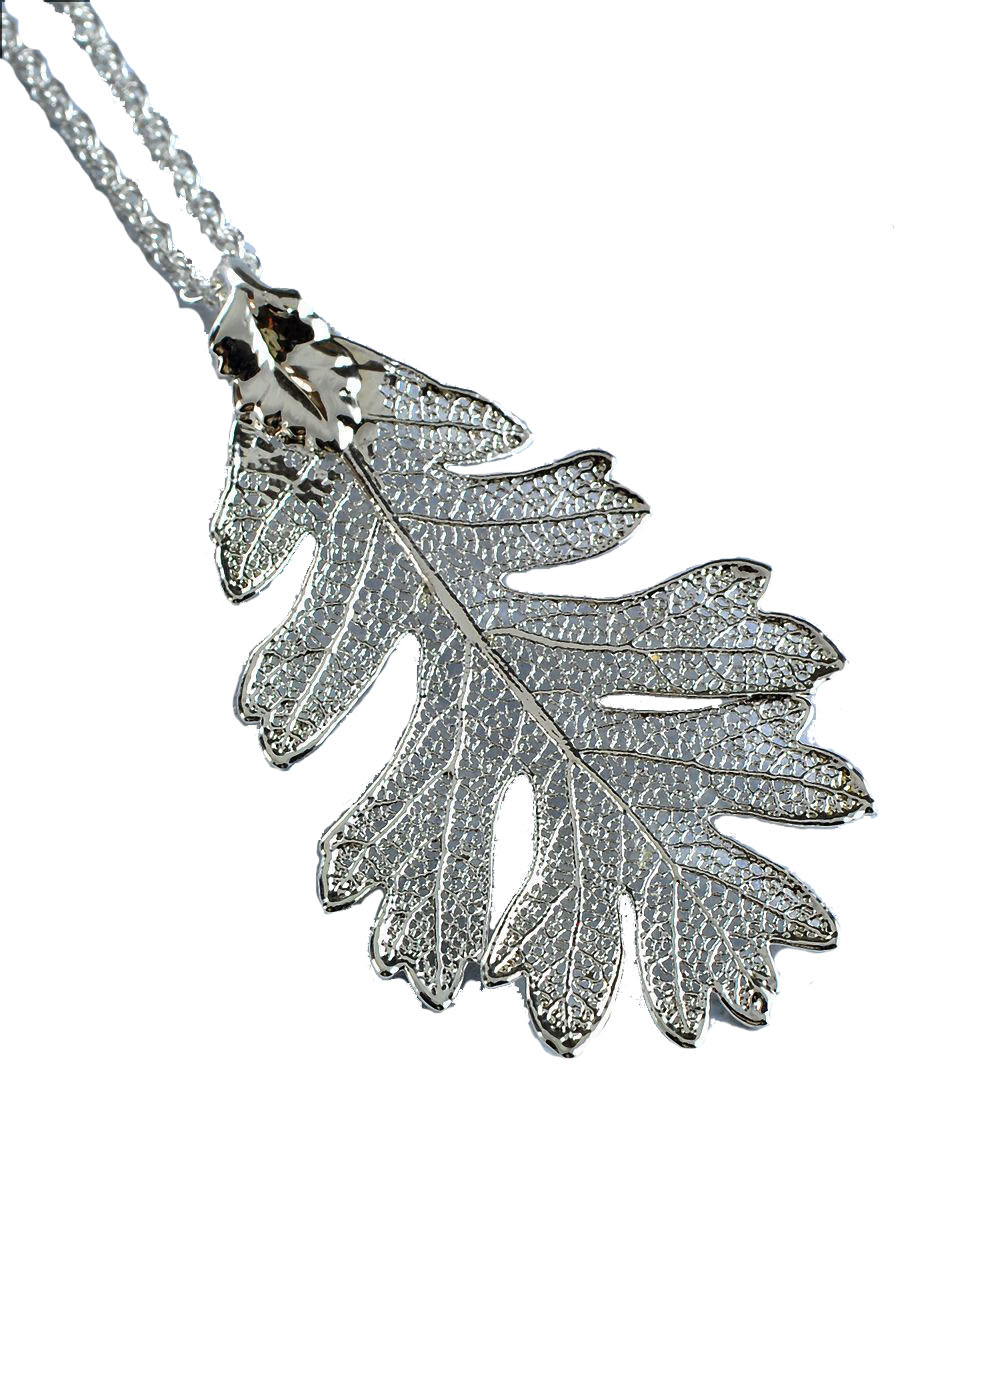 set jewelry silver leaf ancient new plating necklace chain alloy retro pendant earrings sweater maple